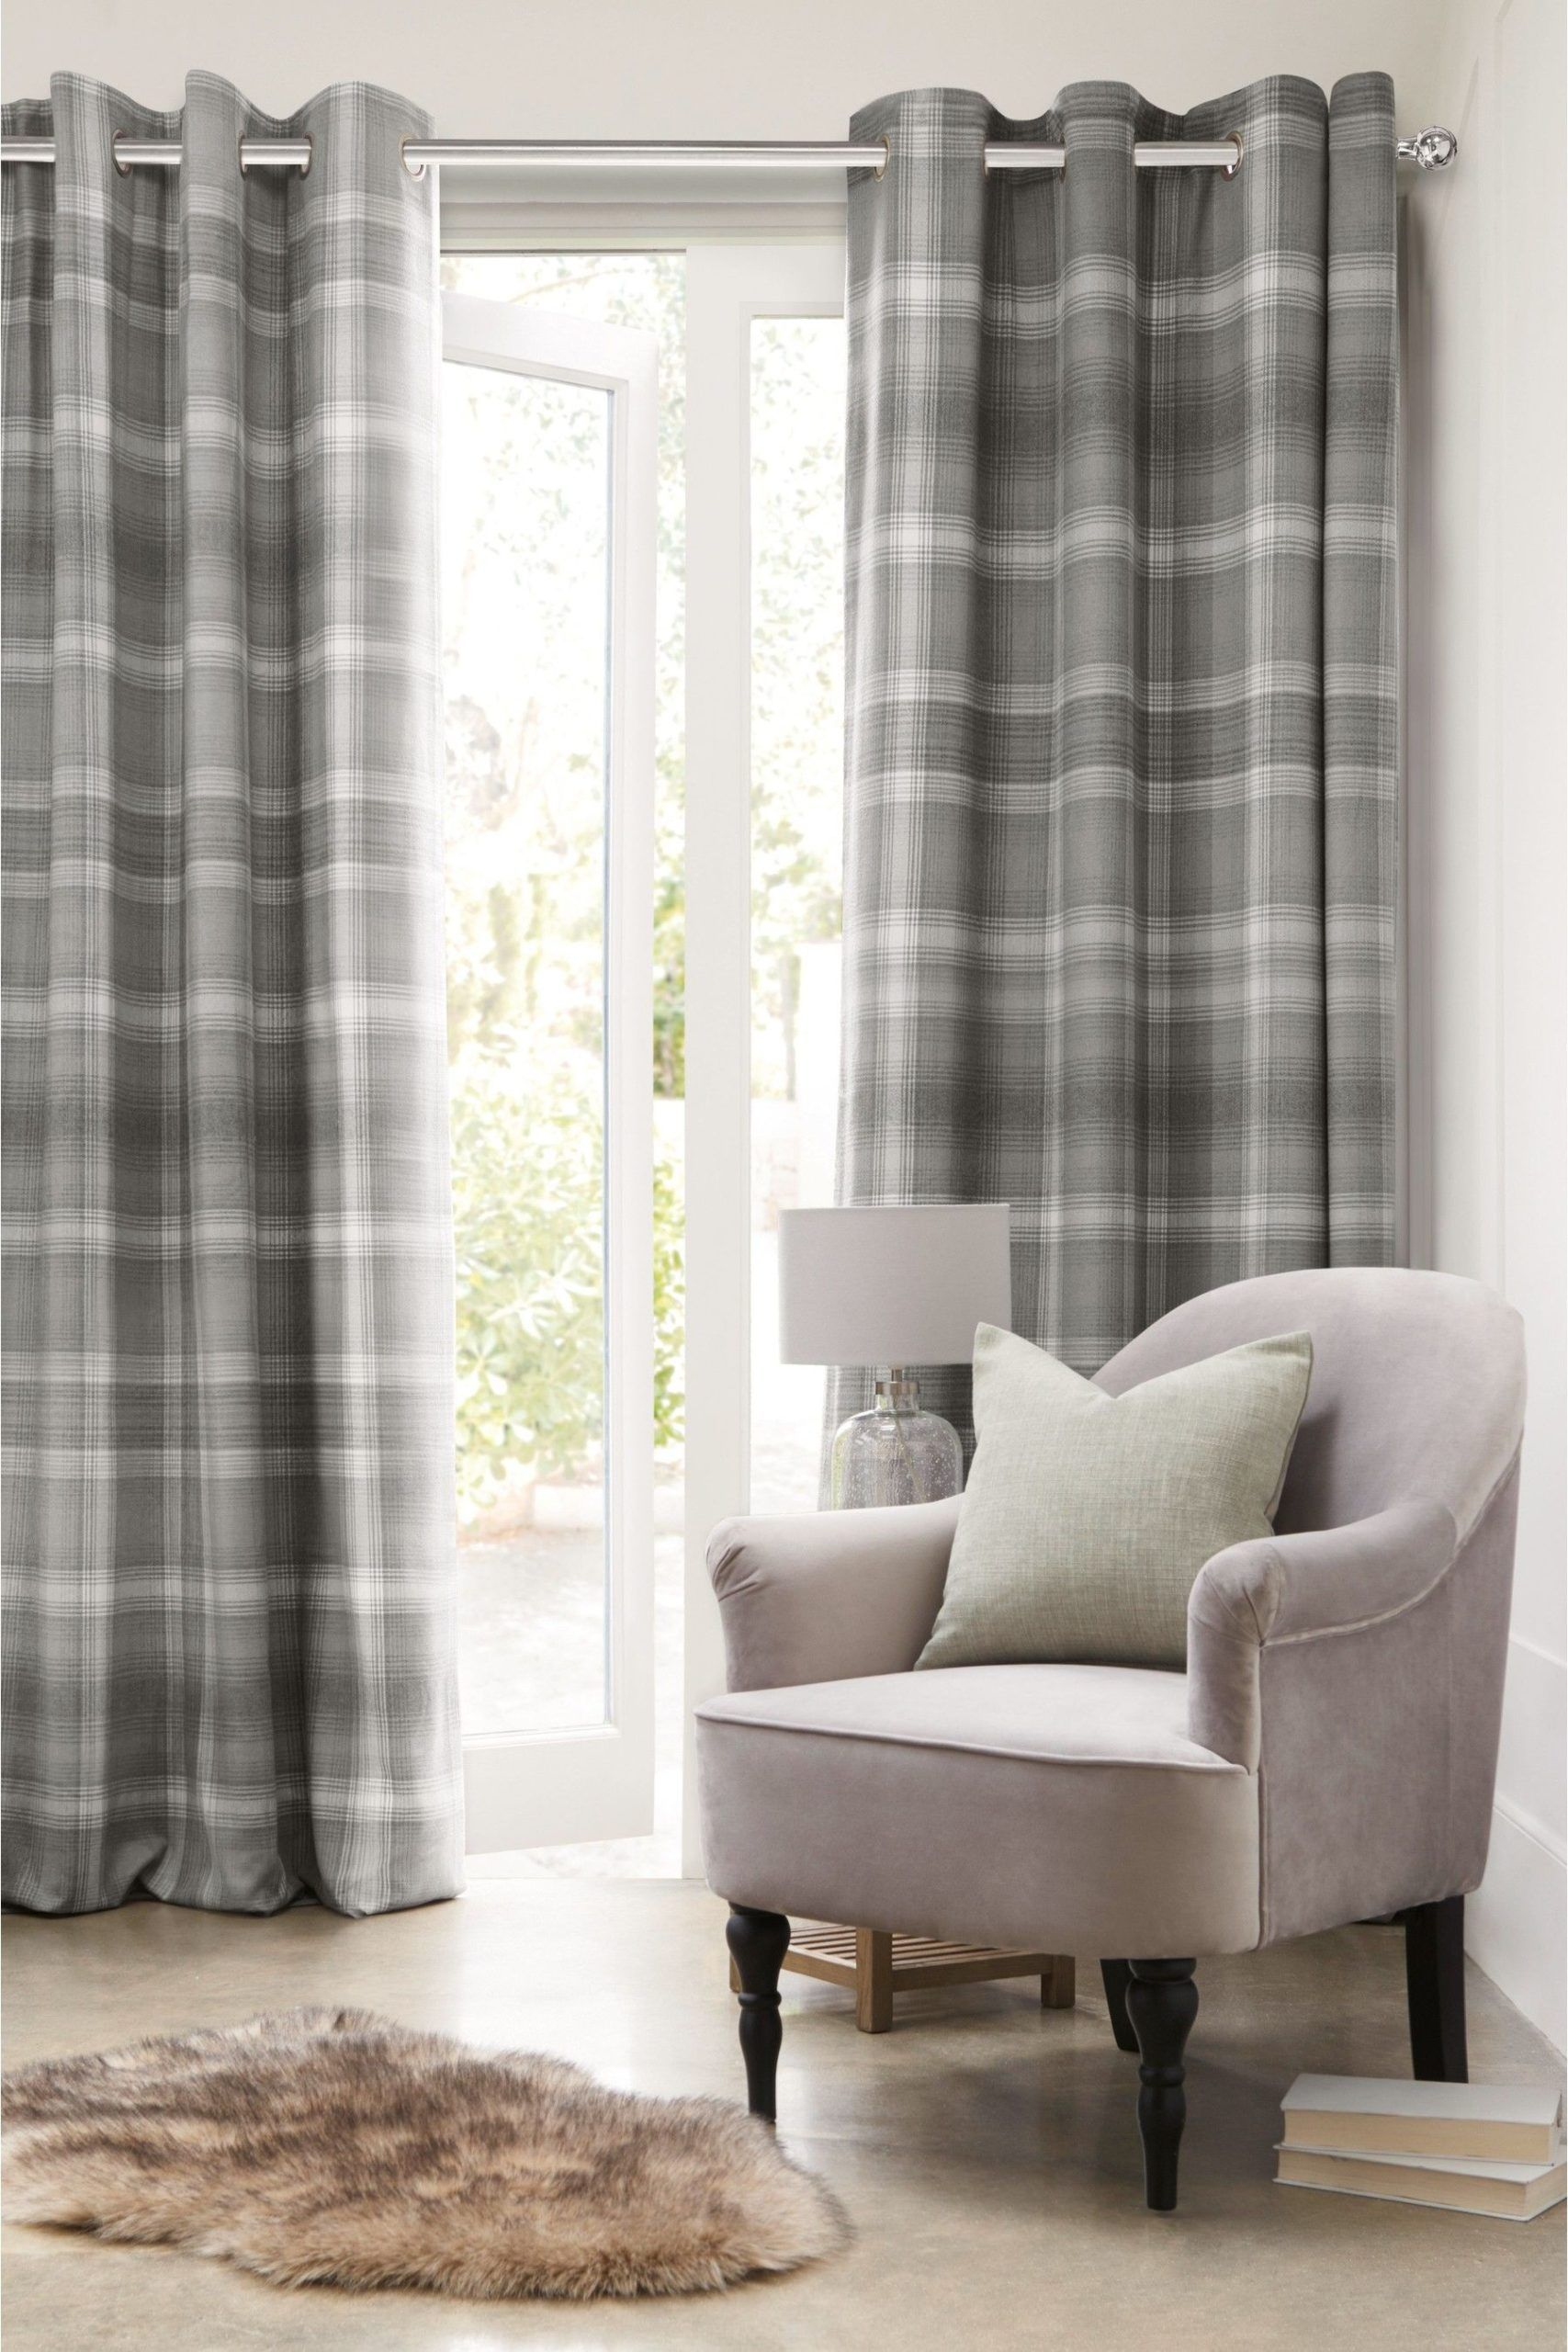 Buy Cosy Check Curtains From The Next Uk Online Shop In 2020 Grey Curtains Living Room Check Curtains Cosy Living Room